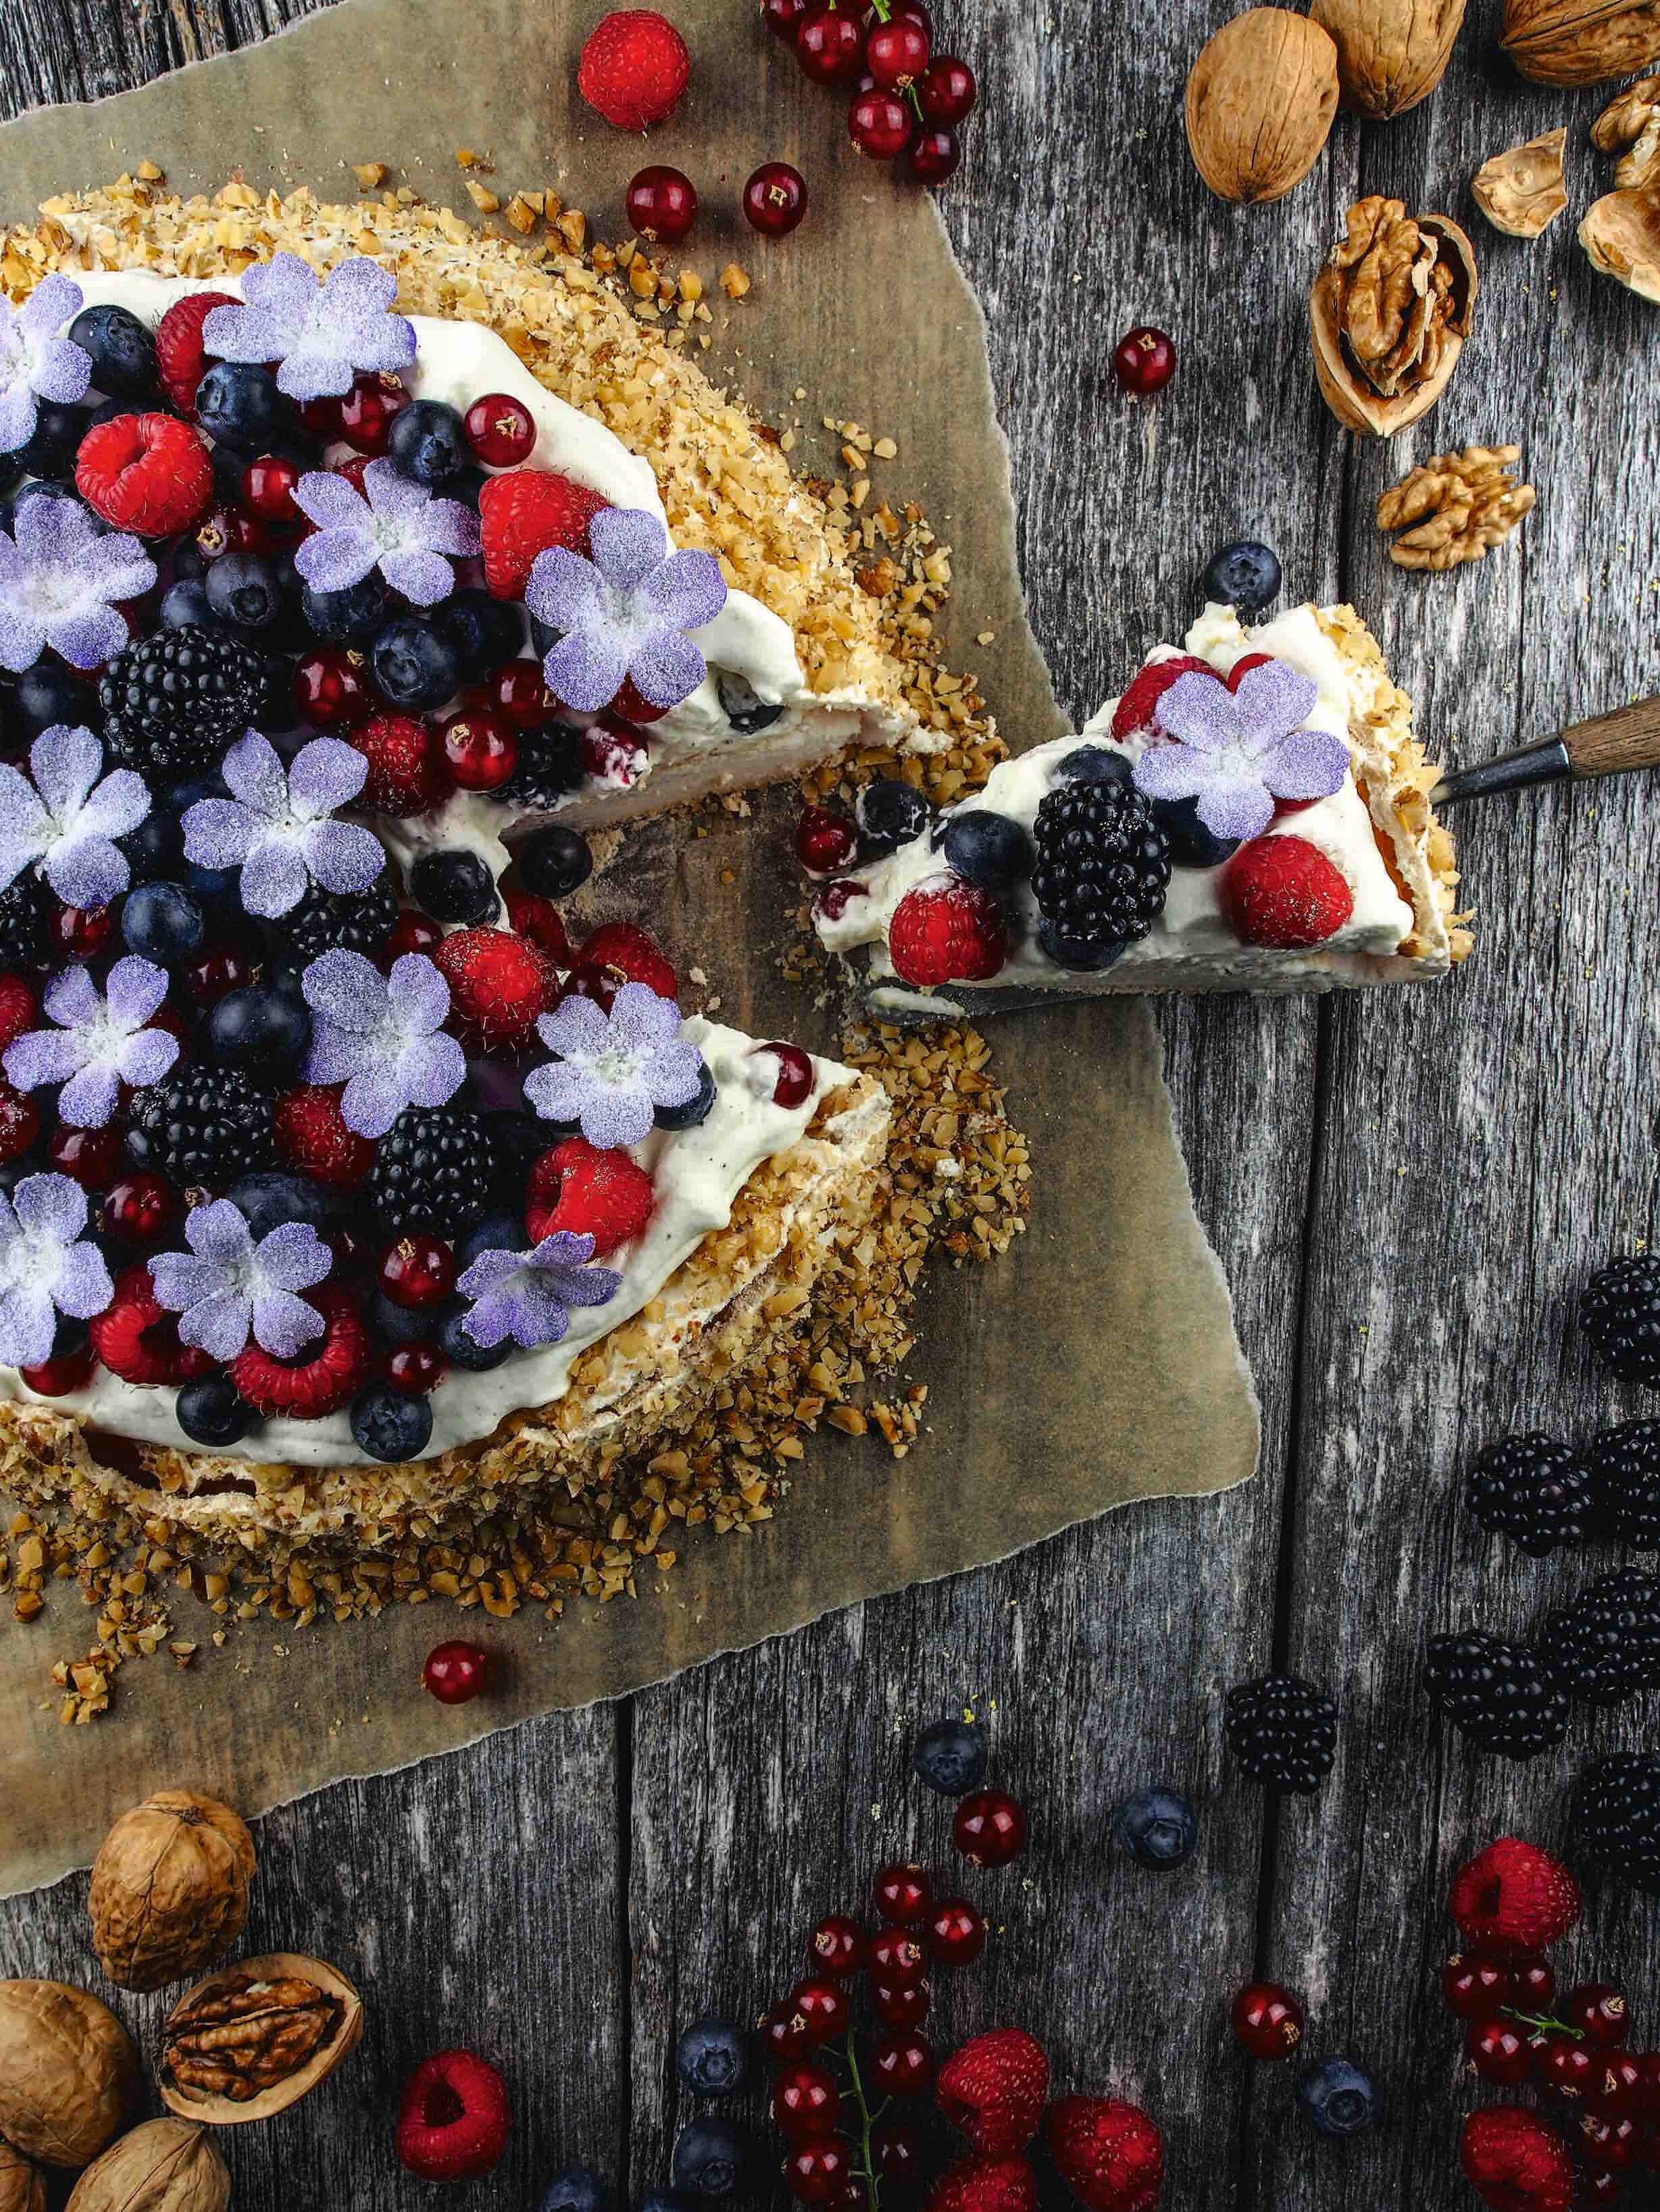 Cake topped with purple flowers and berries.